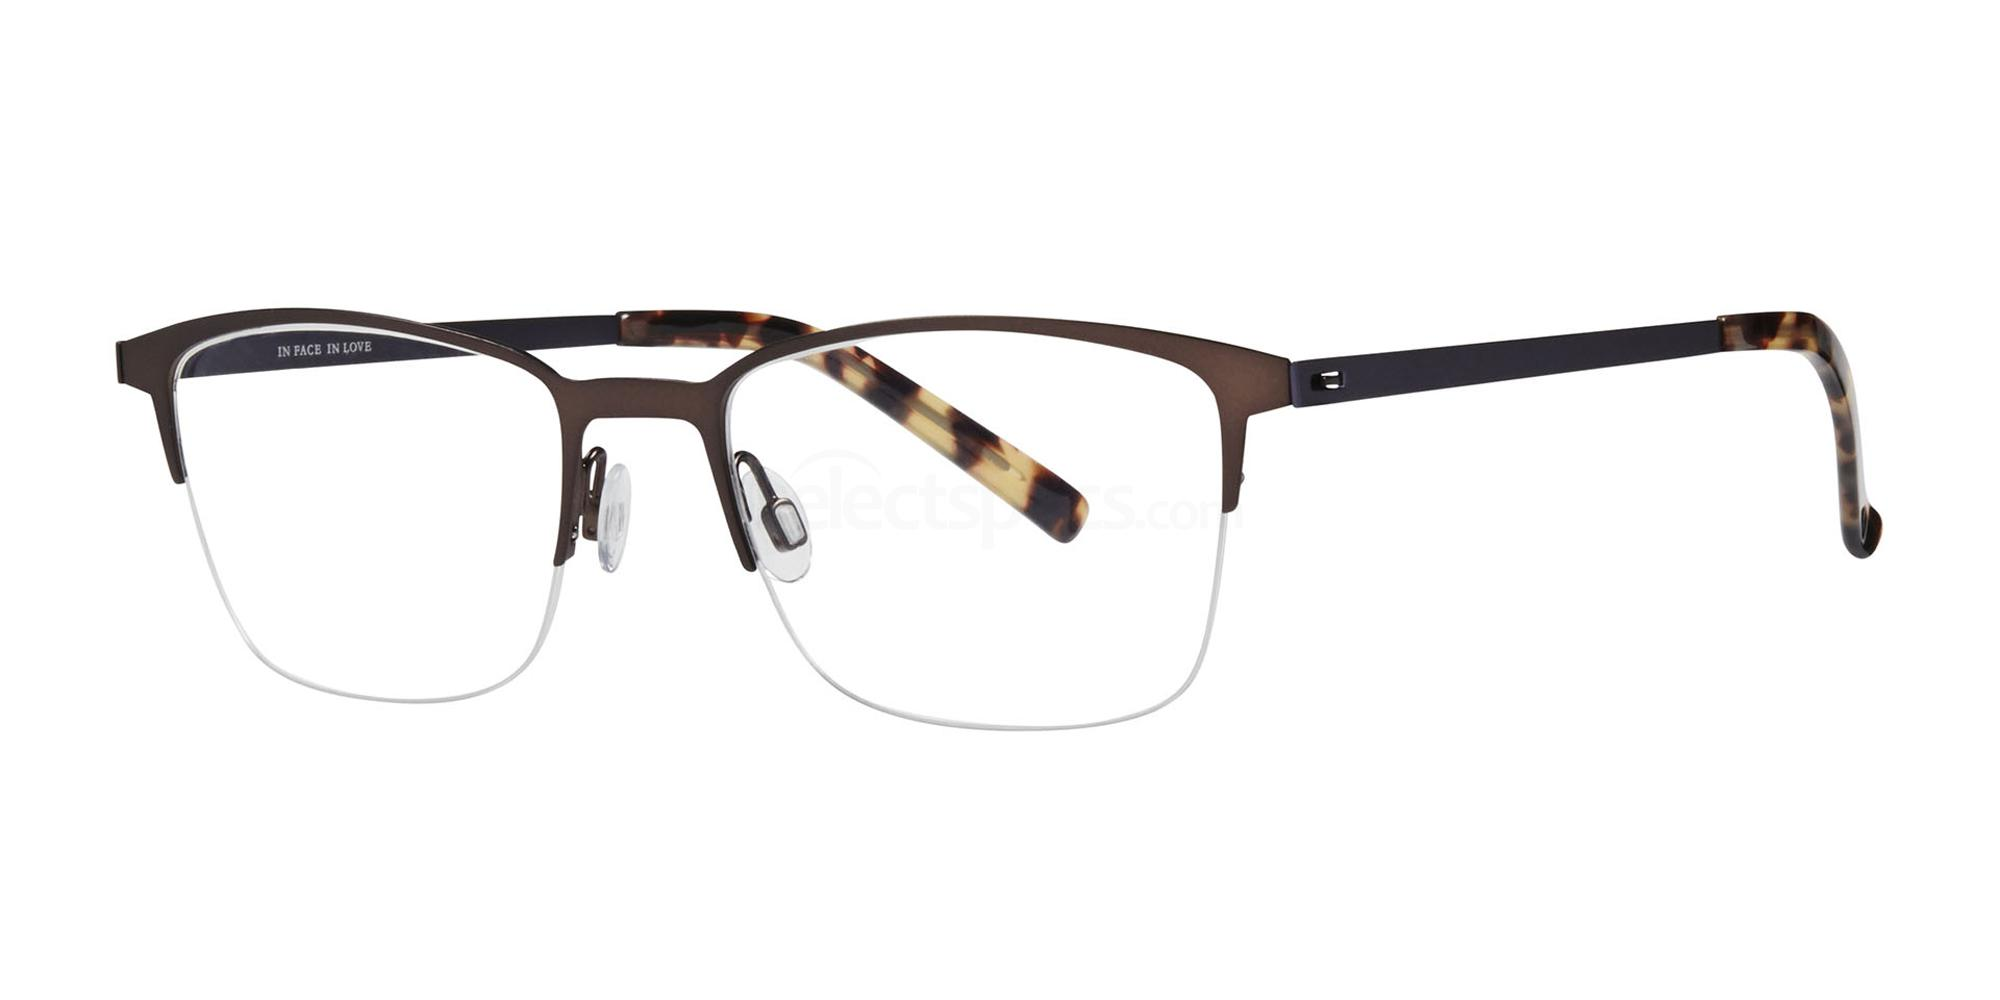 5031 IF8475 Glasses, Inface in Love